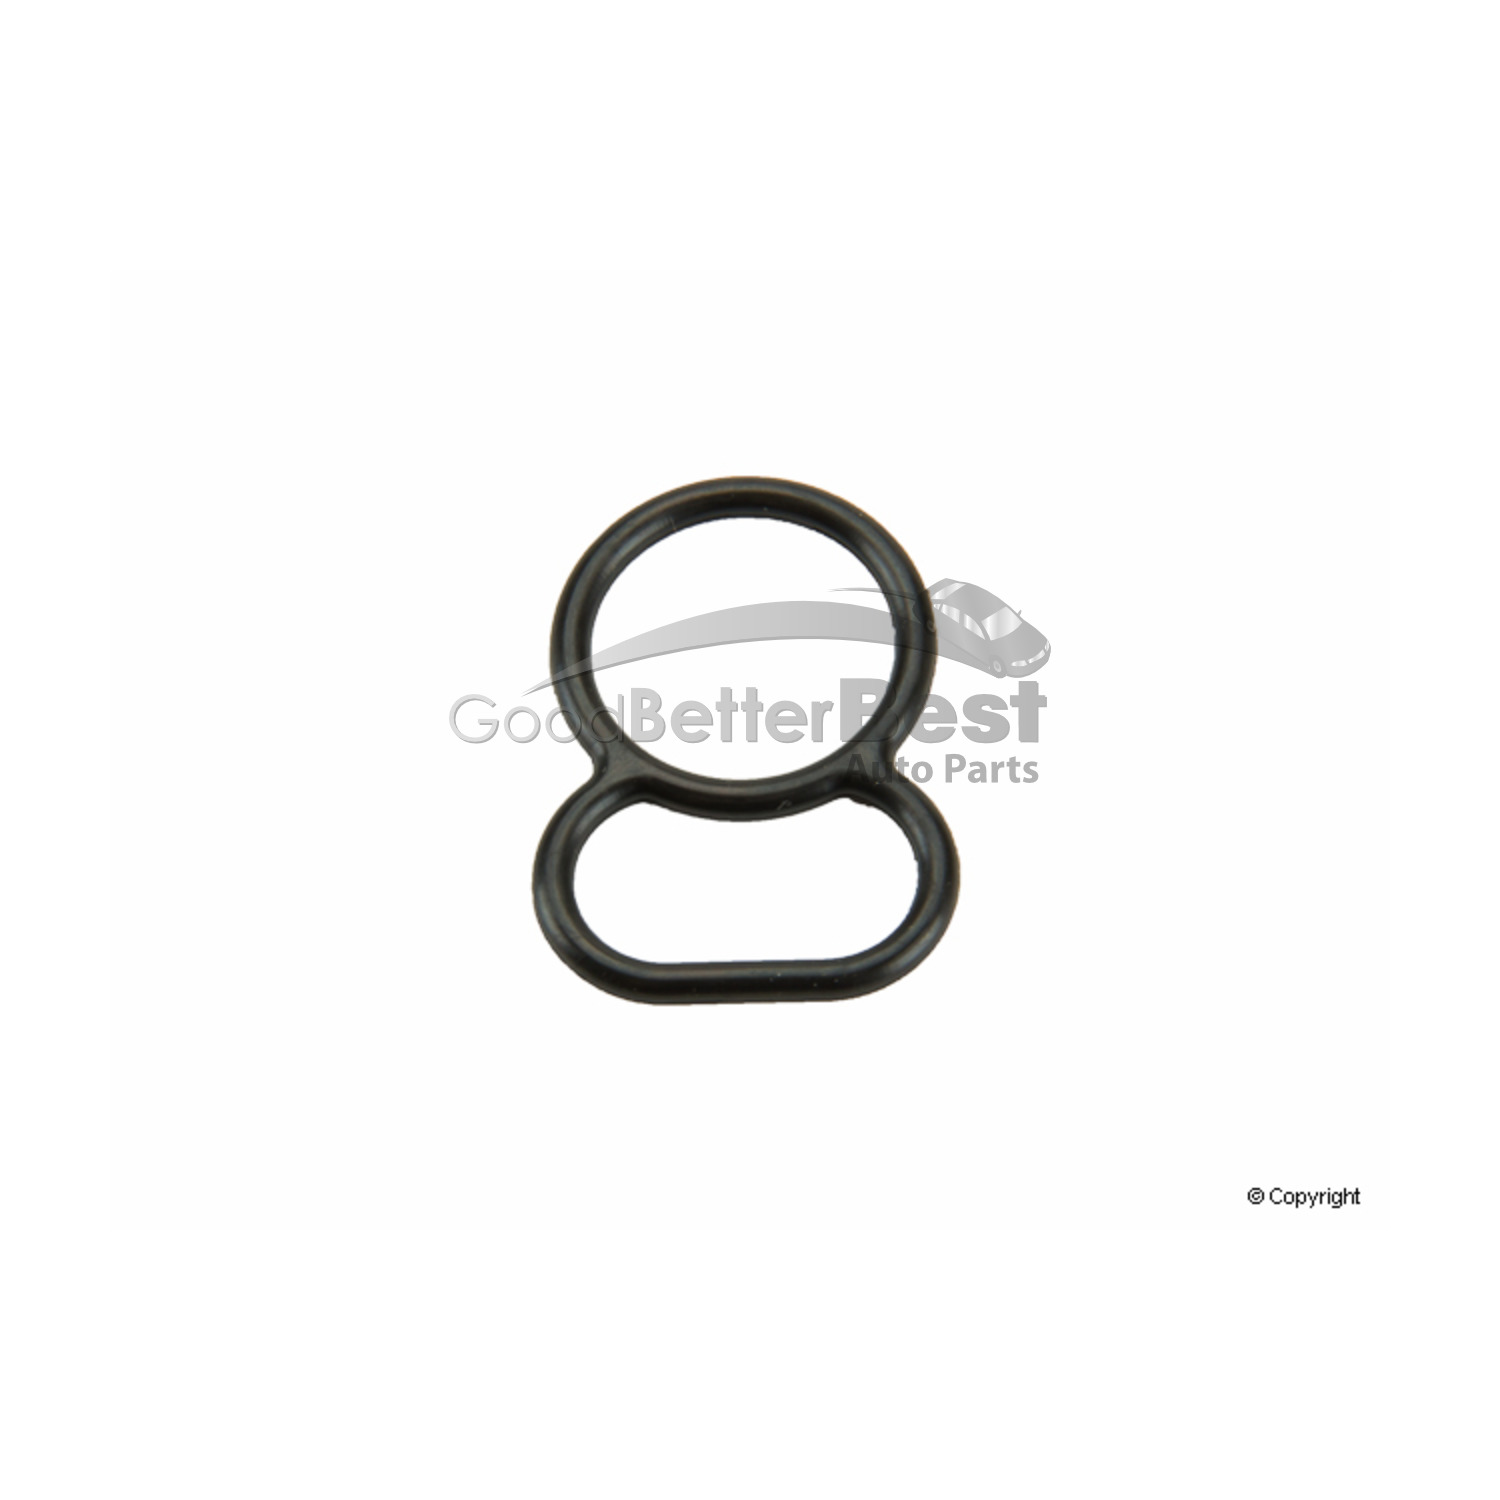 New Stone Engine Variable Timing Solenoid Gasket Jg